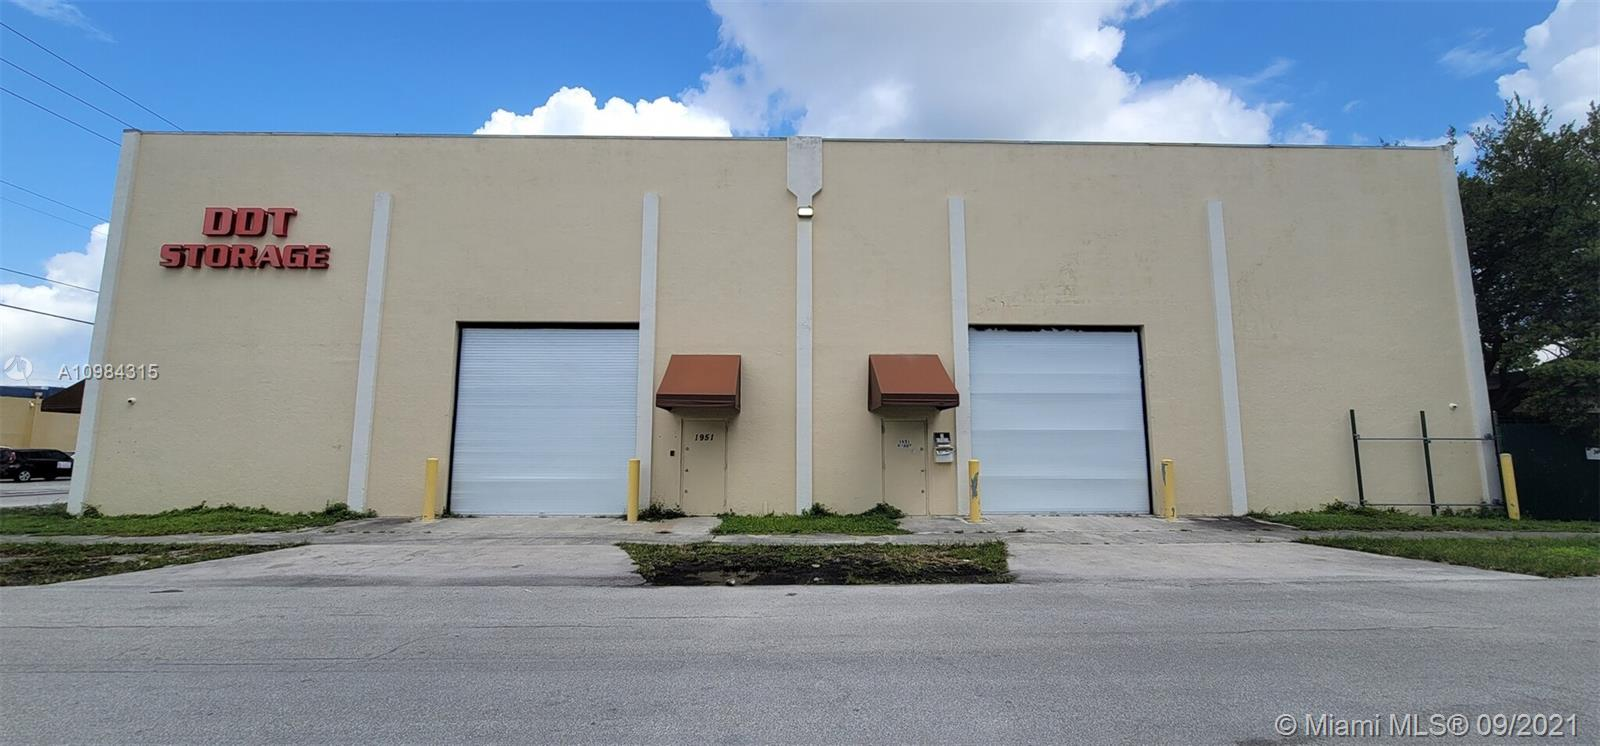 1951 Grant St, Hollywood, Florida 33020, ,Commercial Sale,For Sale,1951 Grant St,A10984315